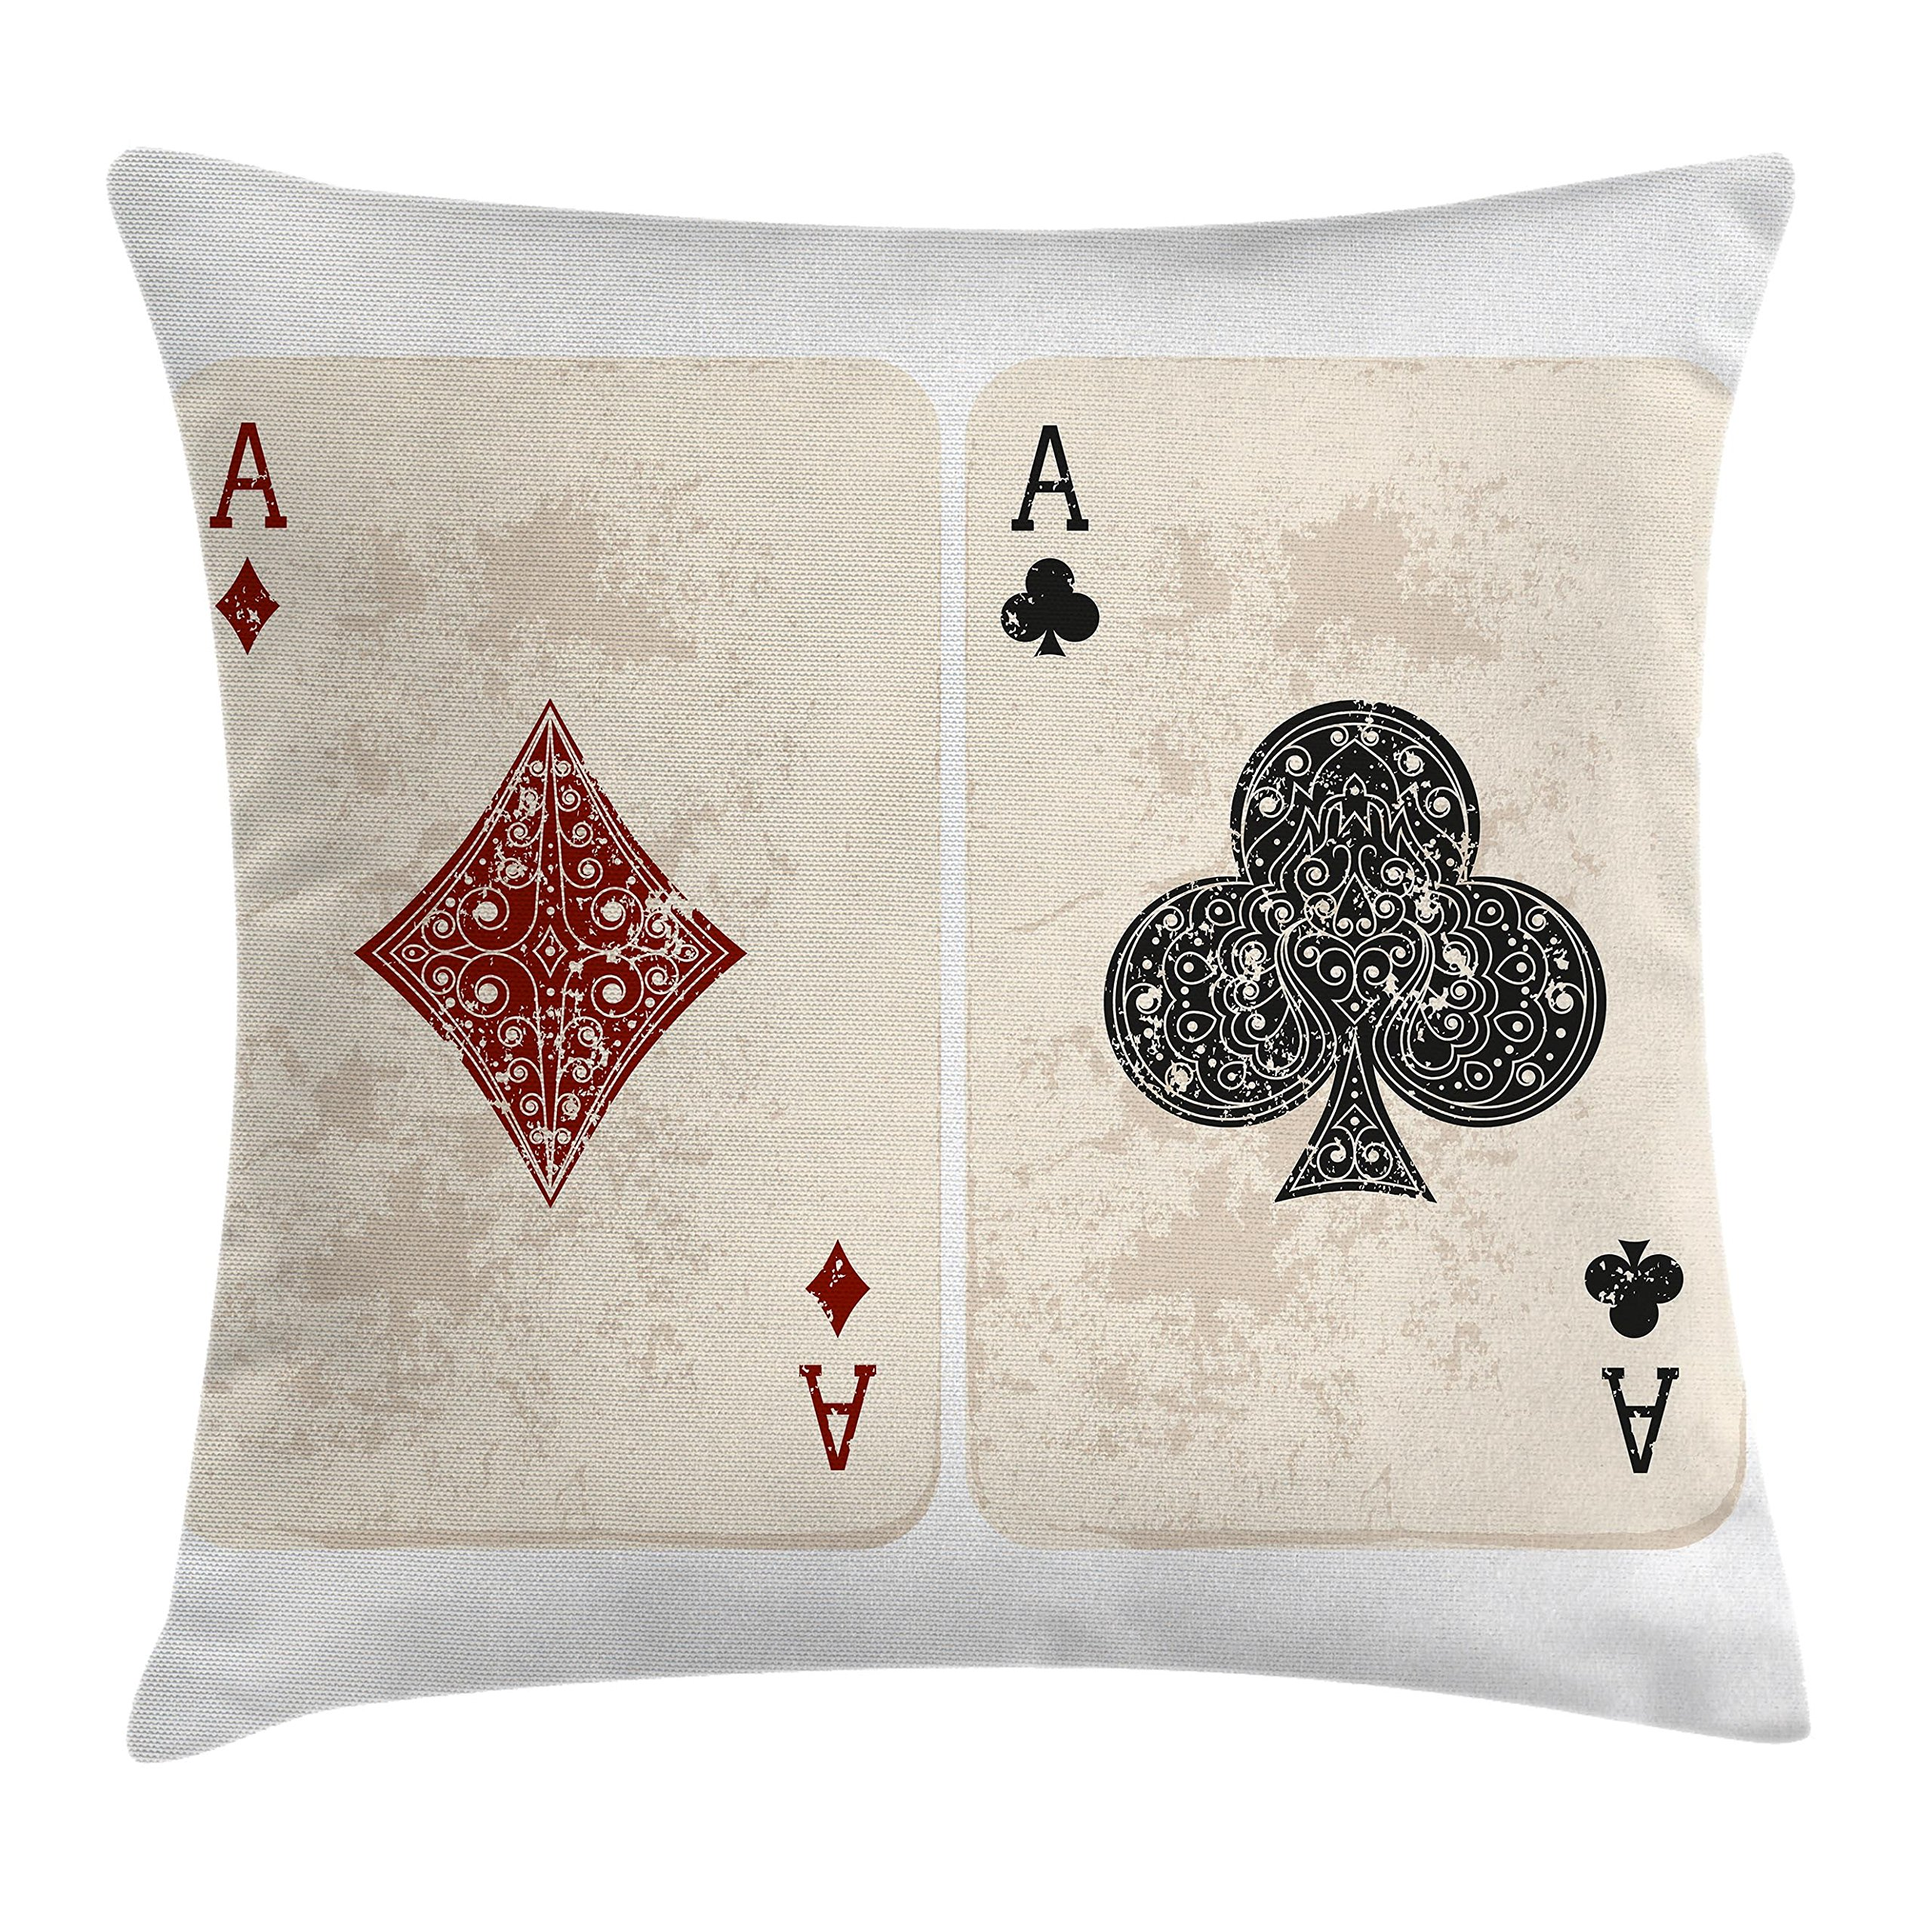 Ambesonne Lifestyle Decor Throw Pillow Cushion Cover by, Ace of Diamonds Clubs Poker Cards Game Grunge Gambling Fortune Illustration, Decorative Square Accent Pillow Case, 18 X 18 Inches, Cream Red